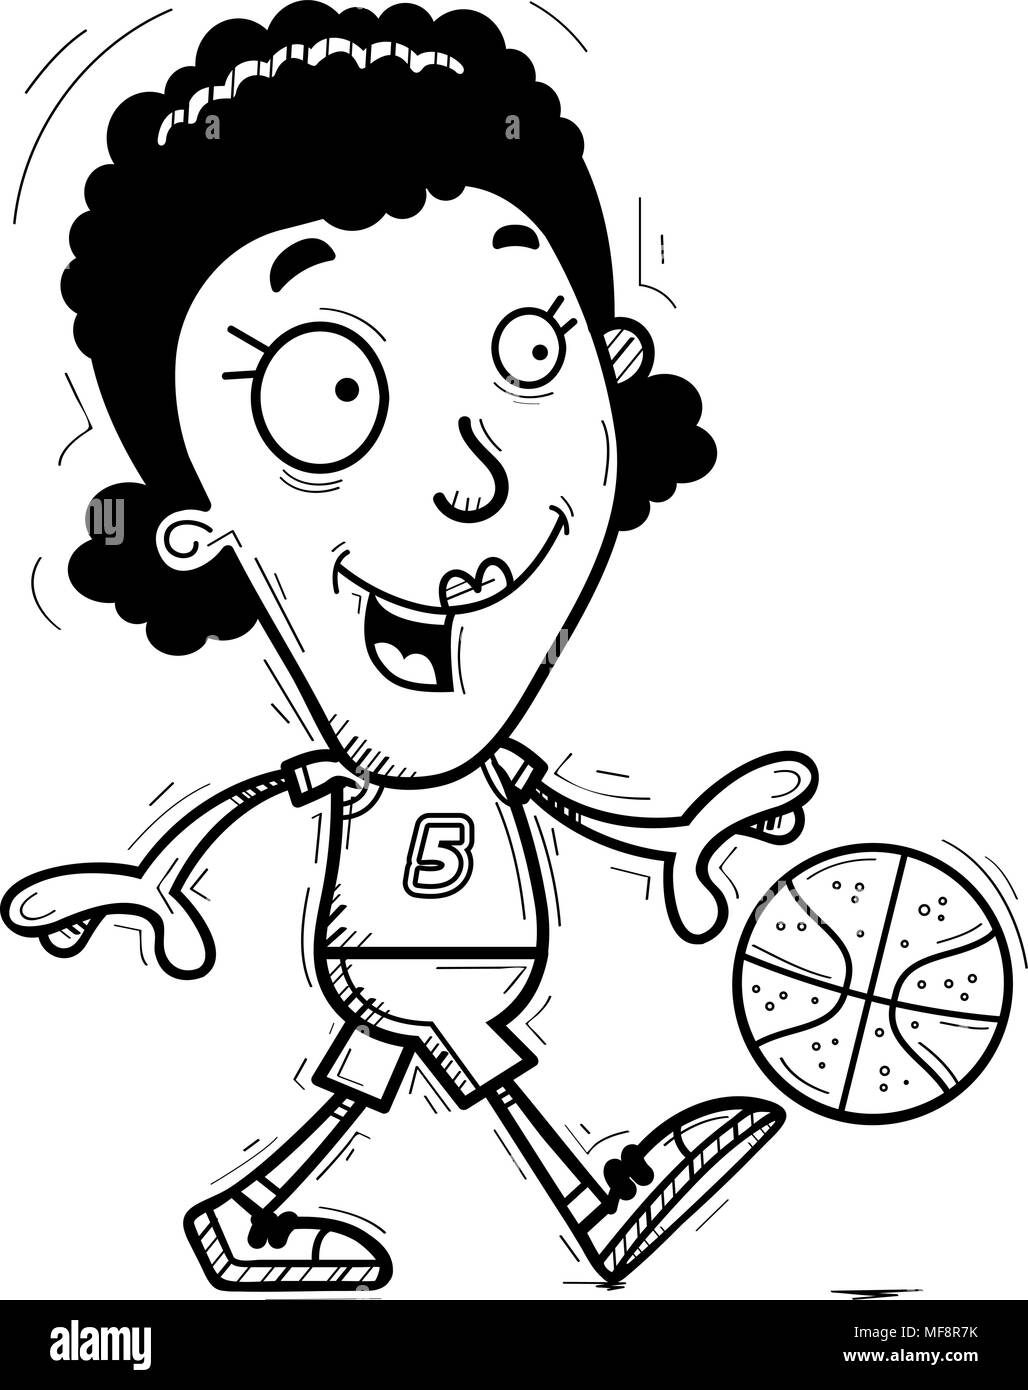 A cartoon illustration of a black woman basketball player walking. - Stock Image